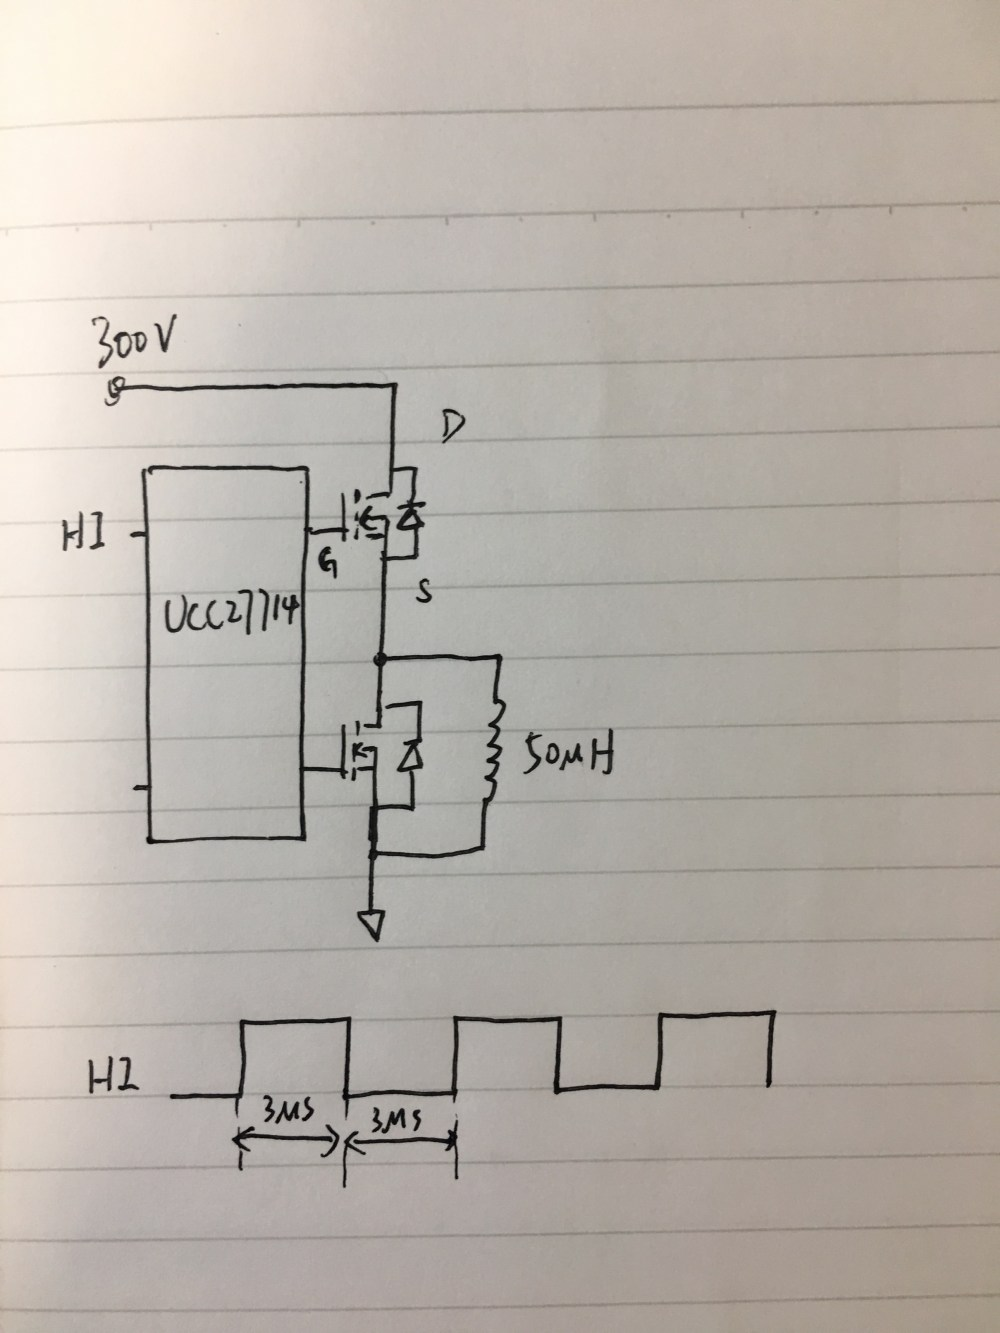 medium resolution of ok the mosfet tested ok below is the schematic diagram schema ok the mosfet tested ok below is the schematic diagram